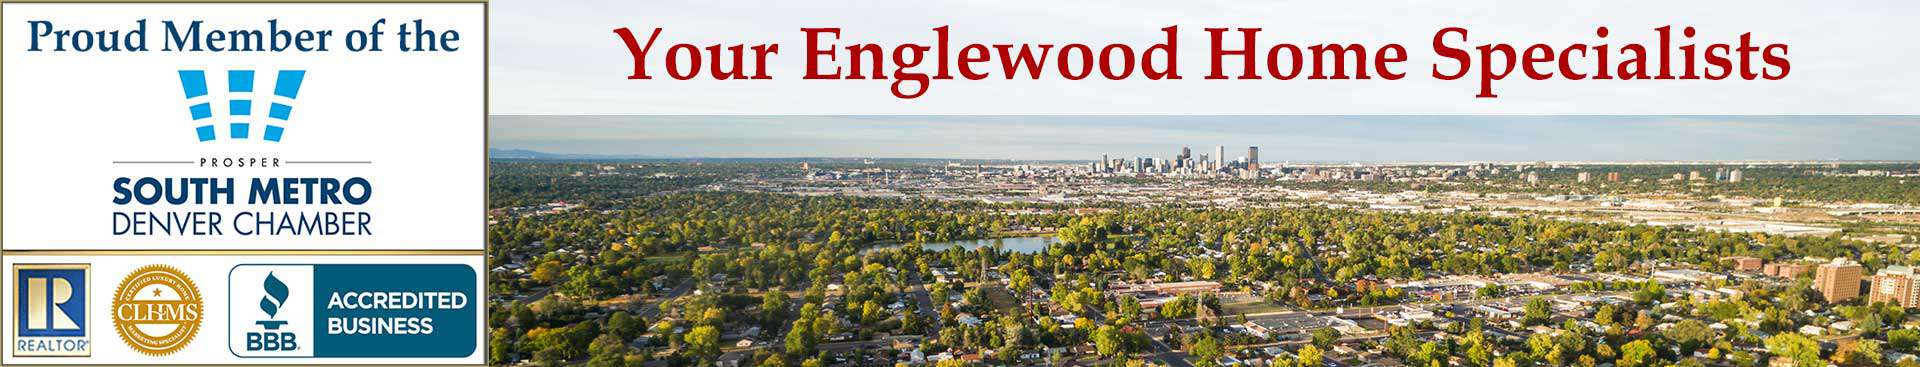 Englewood CO Organizational Banner